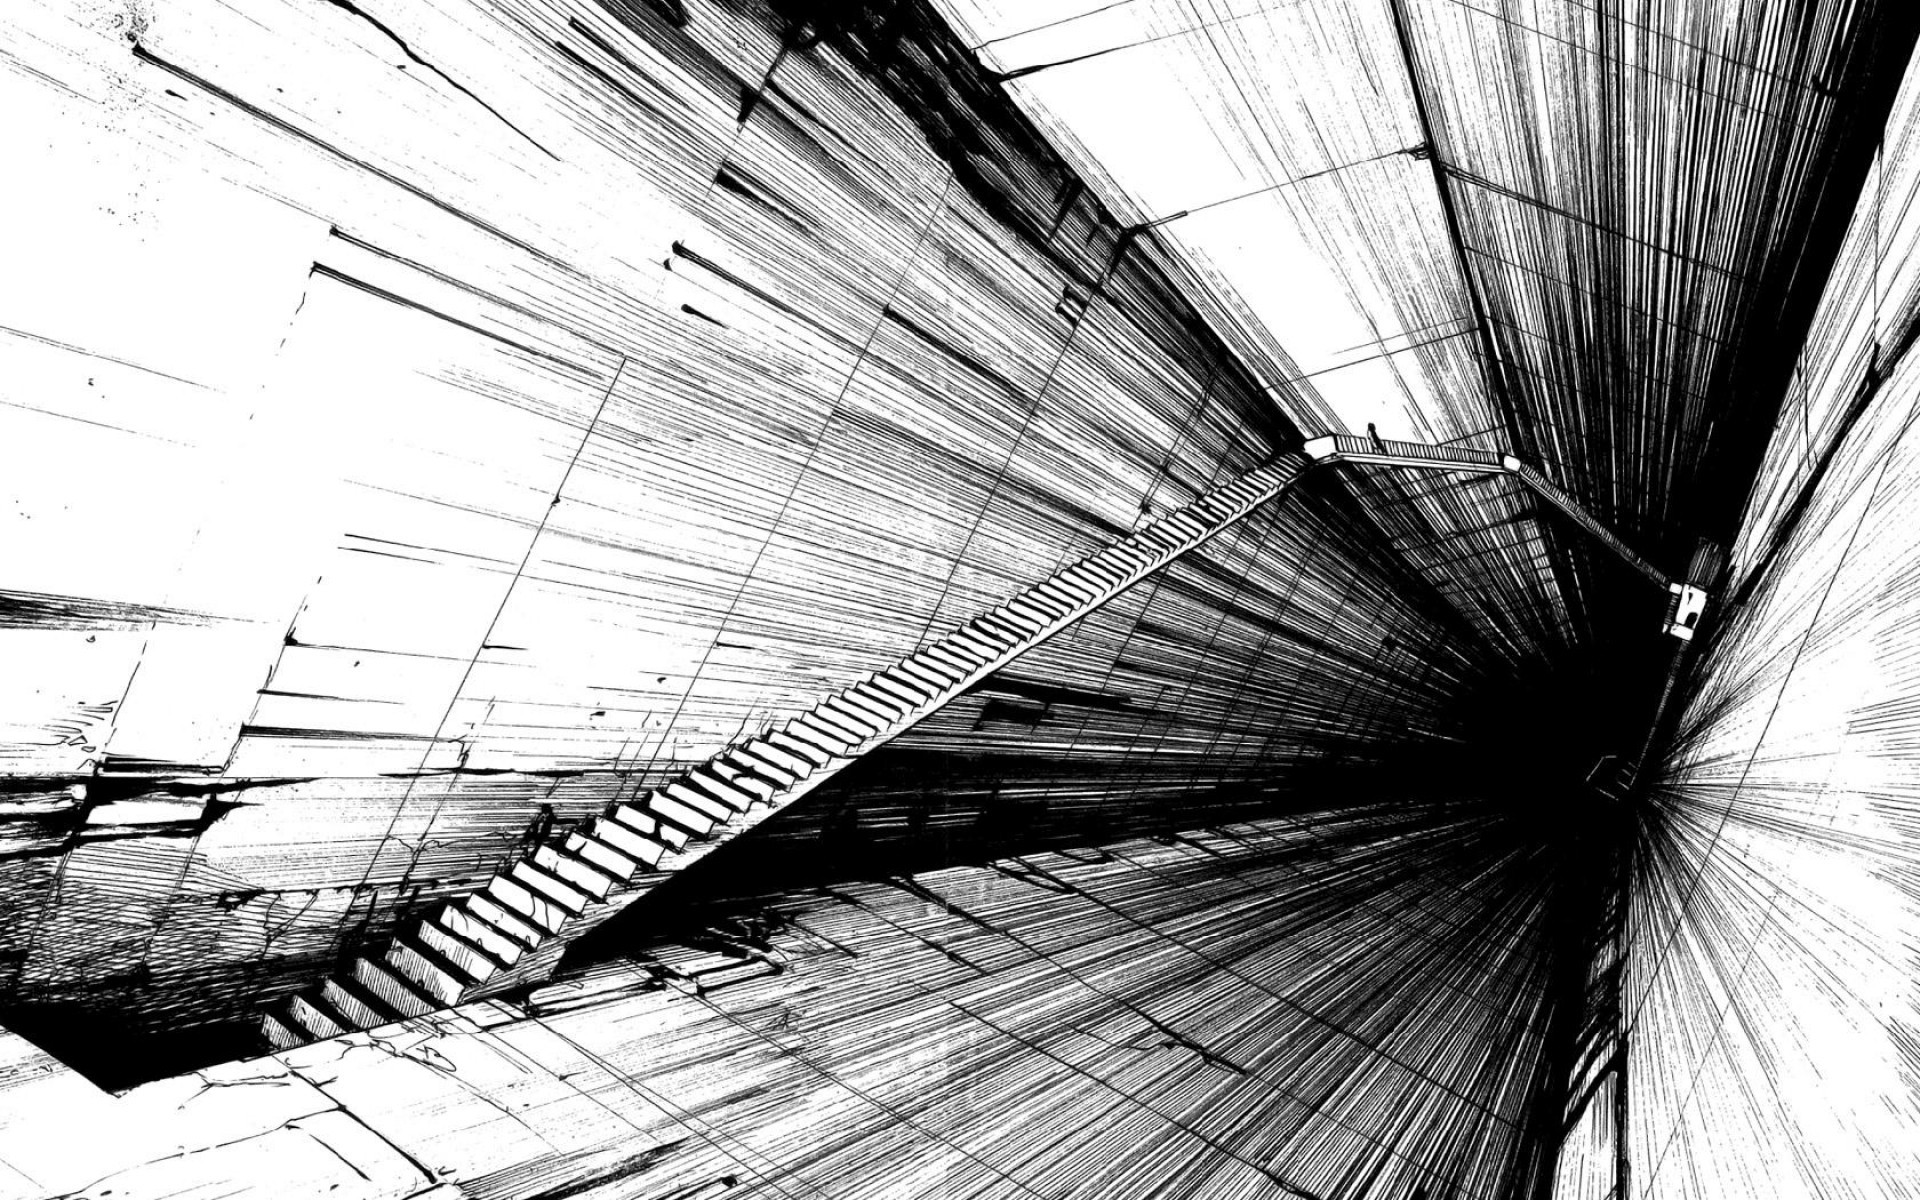 Black And White Abstract Wallpaper – Wallpapers Browse